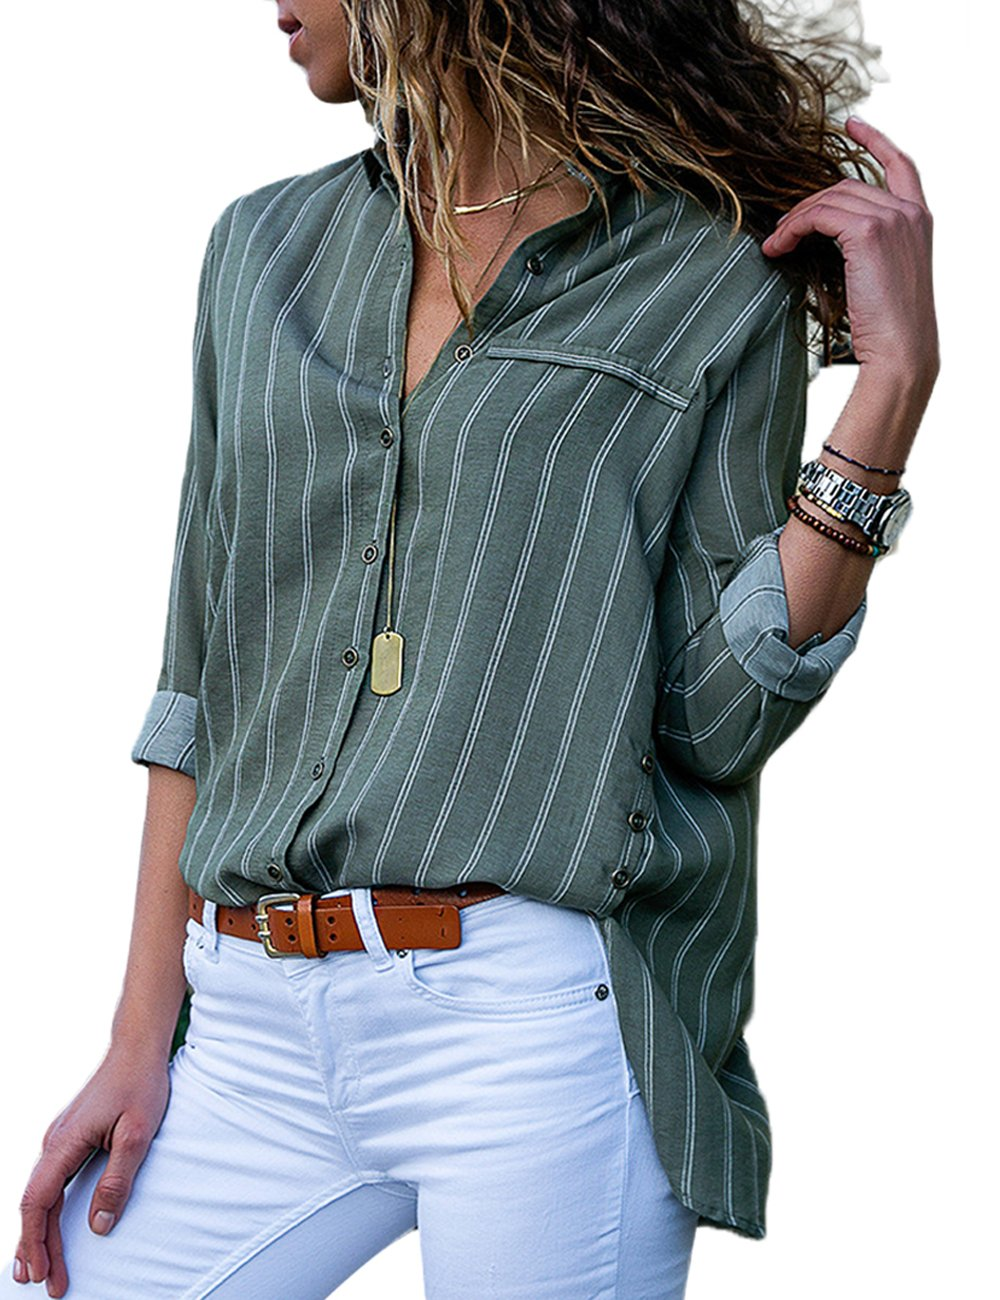 CILKOO Womens Blouses Plus Size Long Sleeve Summer V Neck Button Down Color Block Stripes Loose Blouse Casual Tops and T Shirts Green US18-20 XX-Large